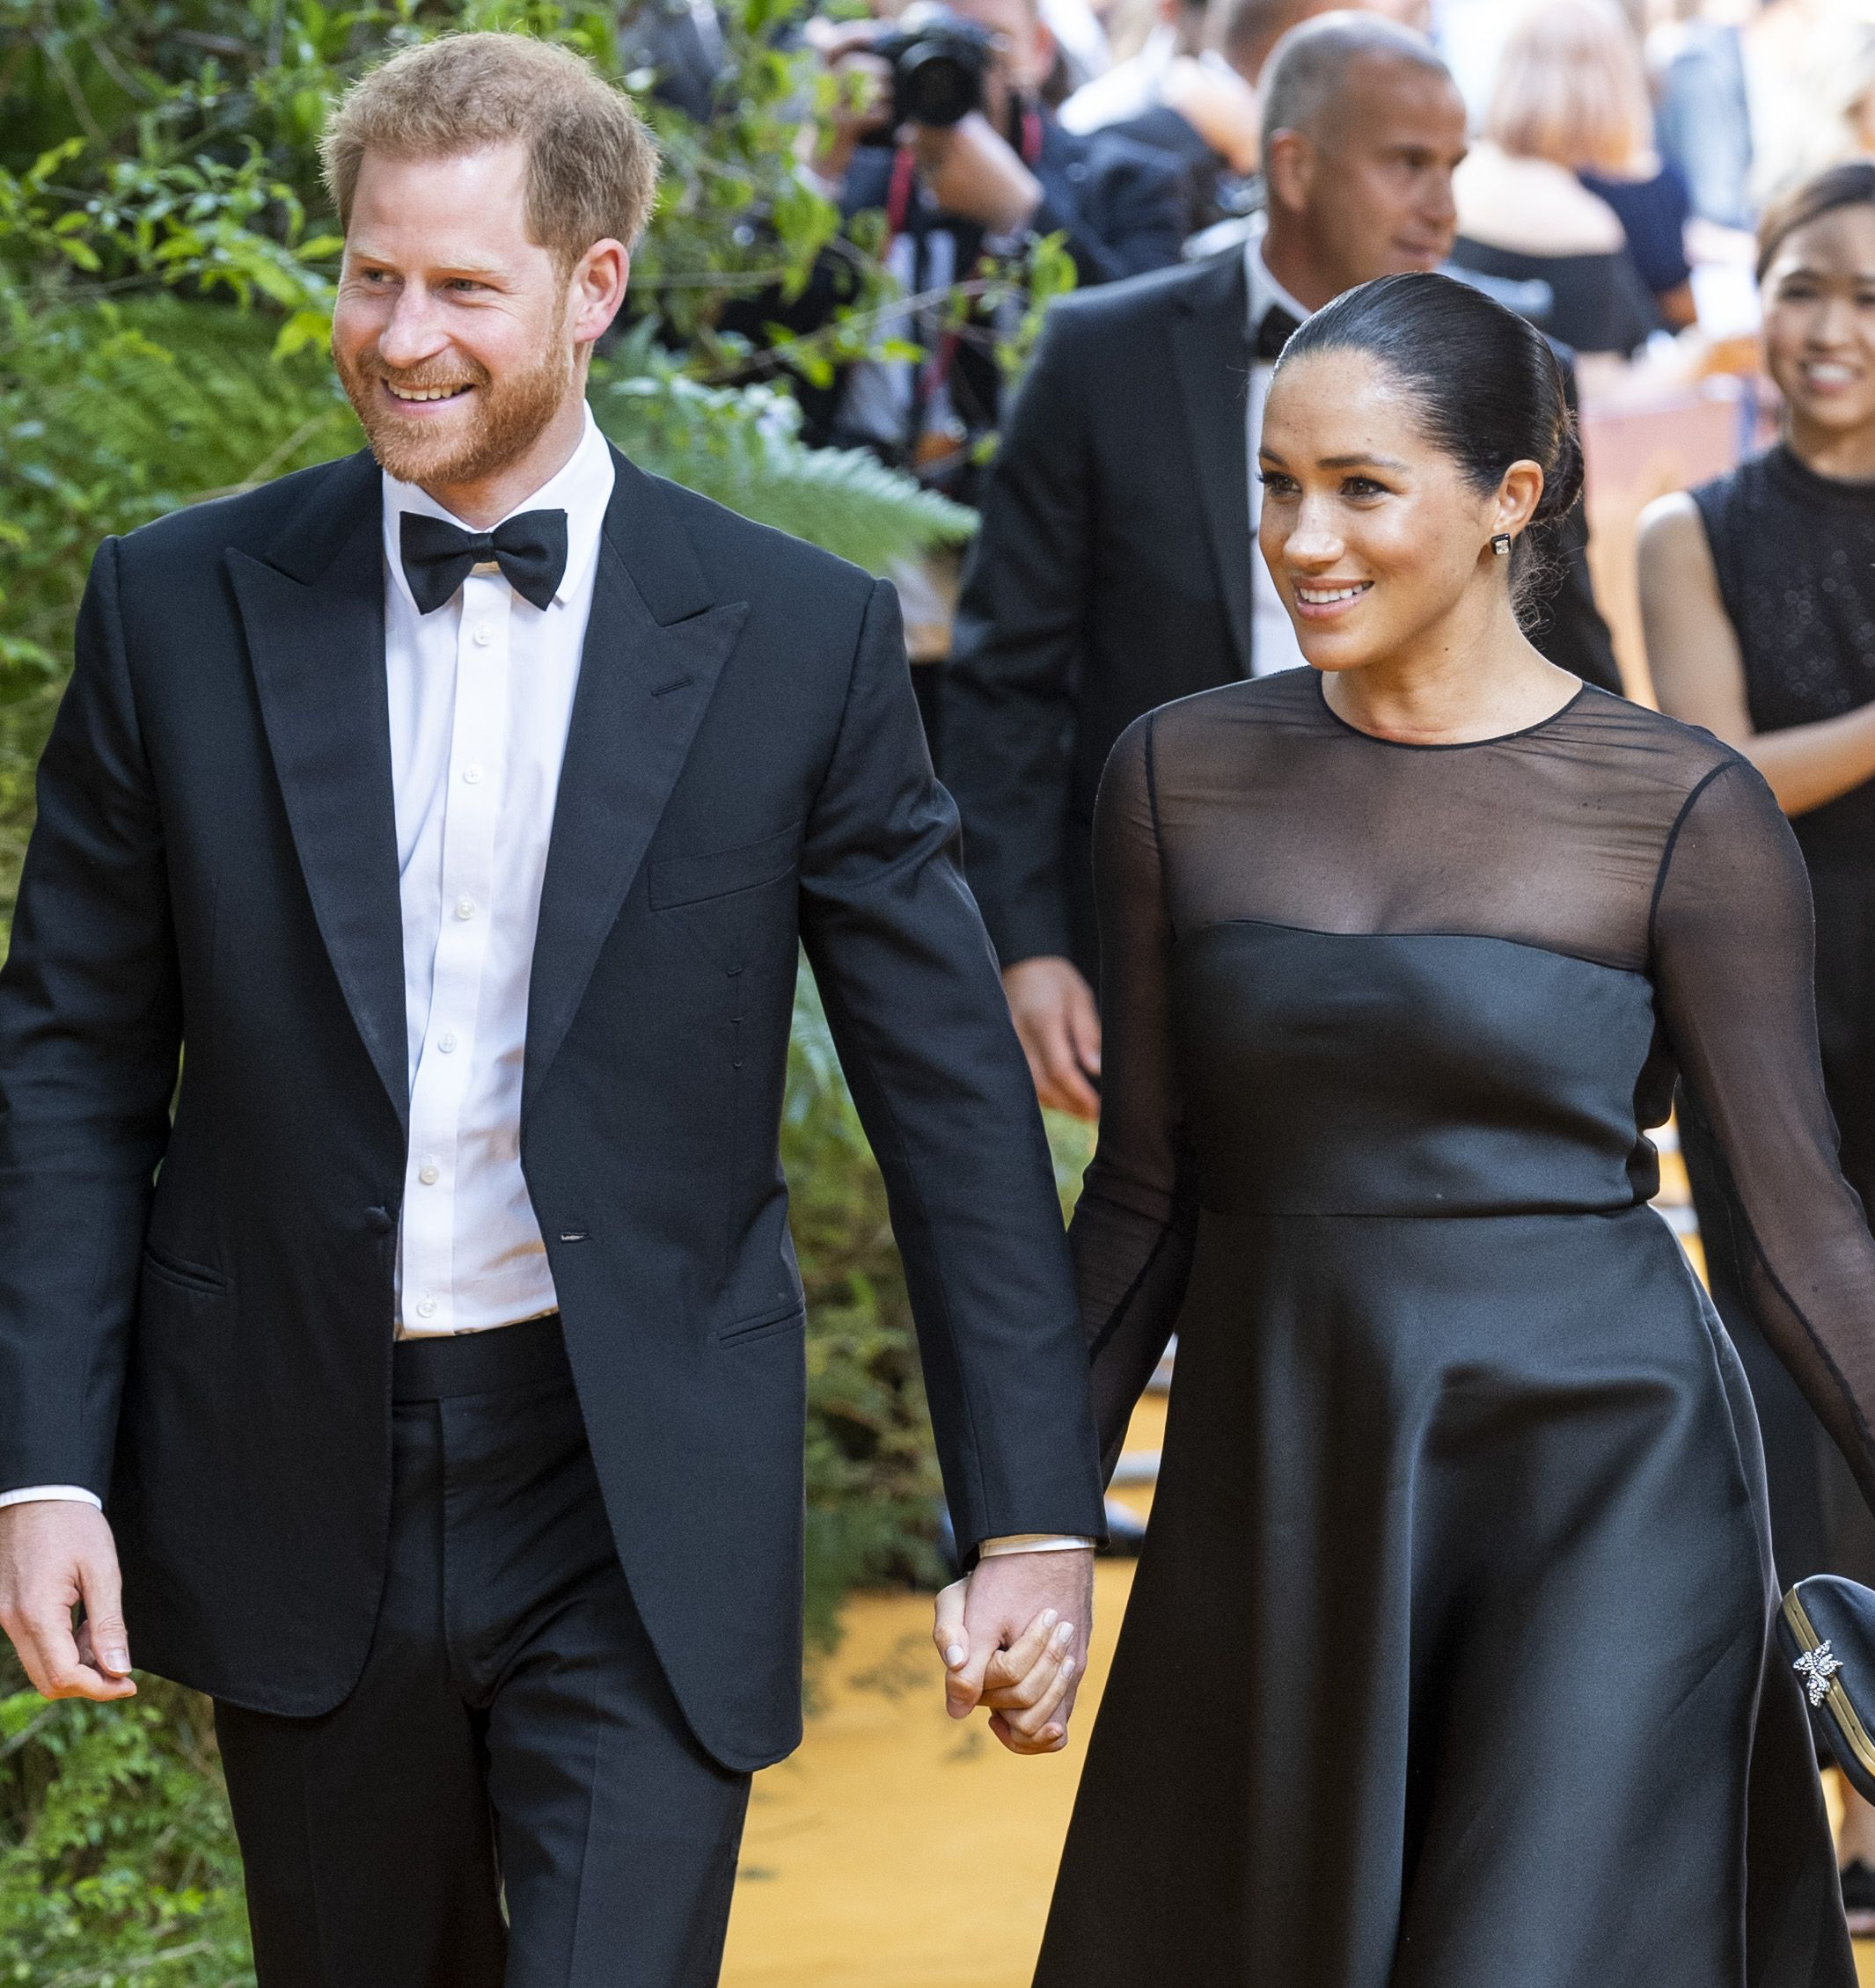 Meghan Markle and Prince Harry Rolled Up to 'The Lion King' Premiere Looking Amazing